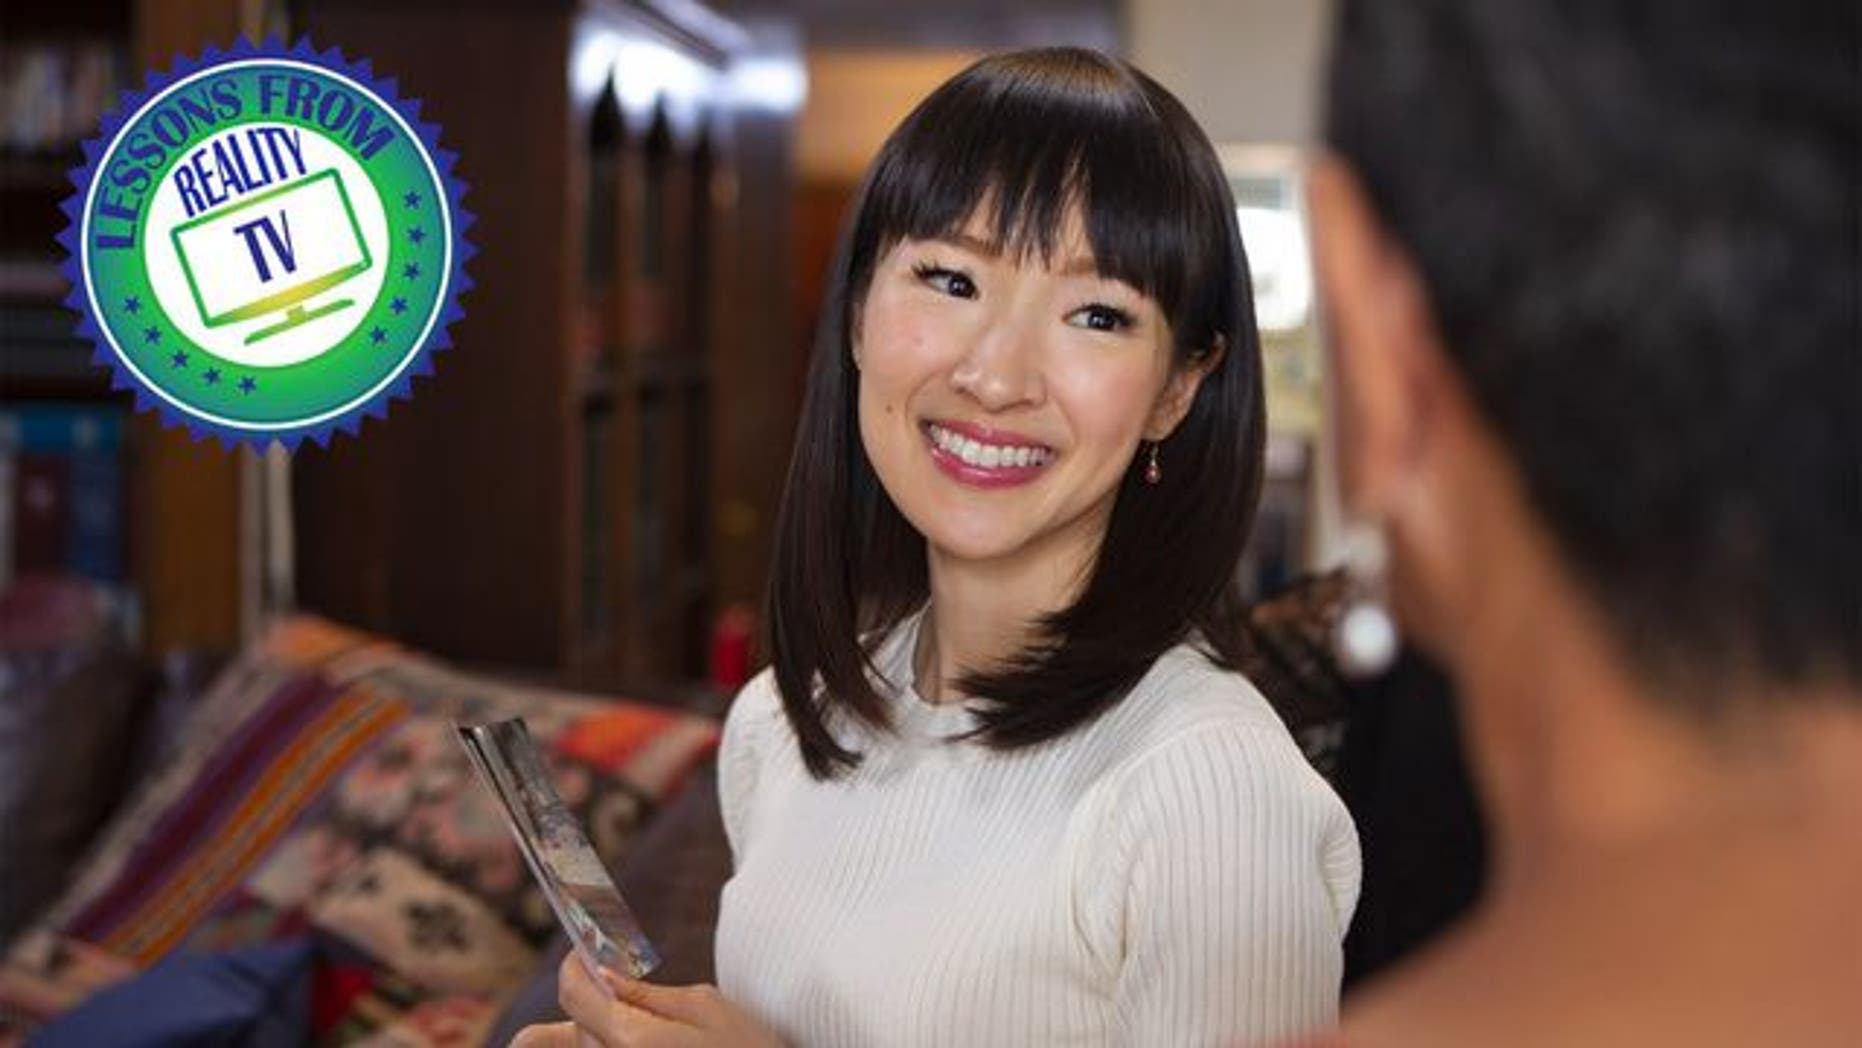 marie kondo 39 s netflix show inspires viewers to 39 tidy up 39 3 popular organizing tips fox news. Black Bedroom Furniture Sets. Home Design Ideas